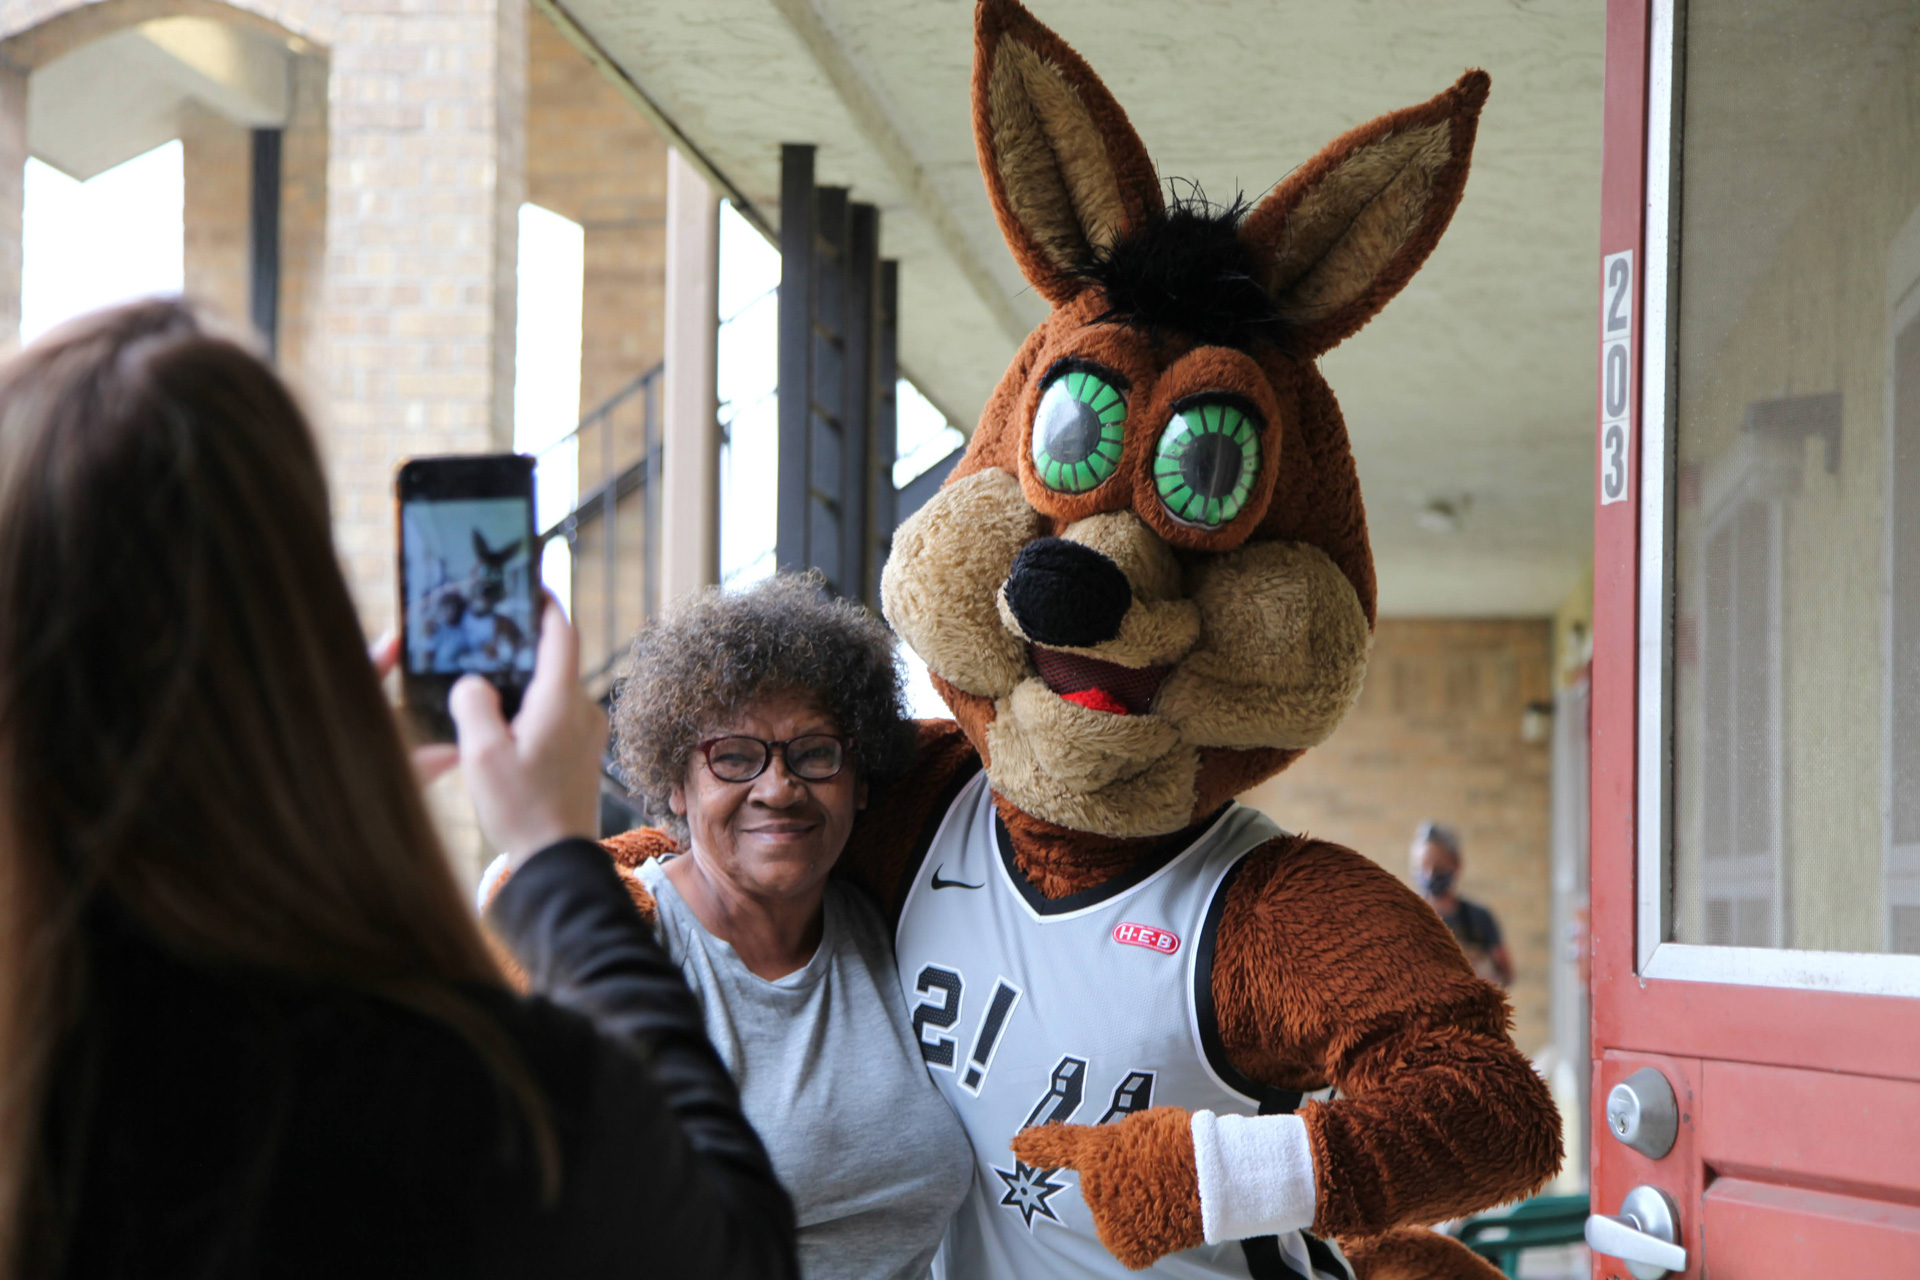 Spurs Coyote to Surprise Elderly with $100 Gift Cards